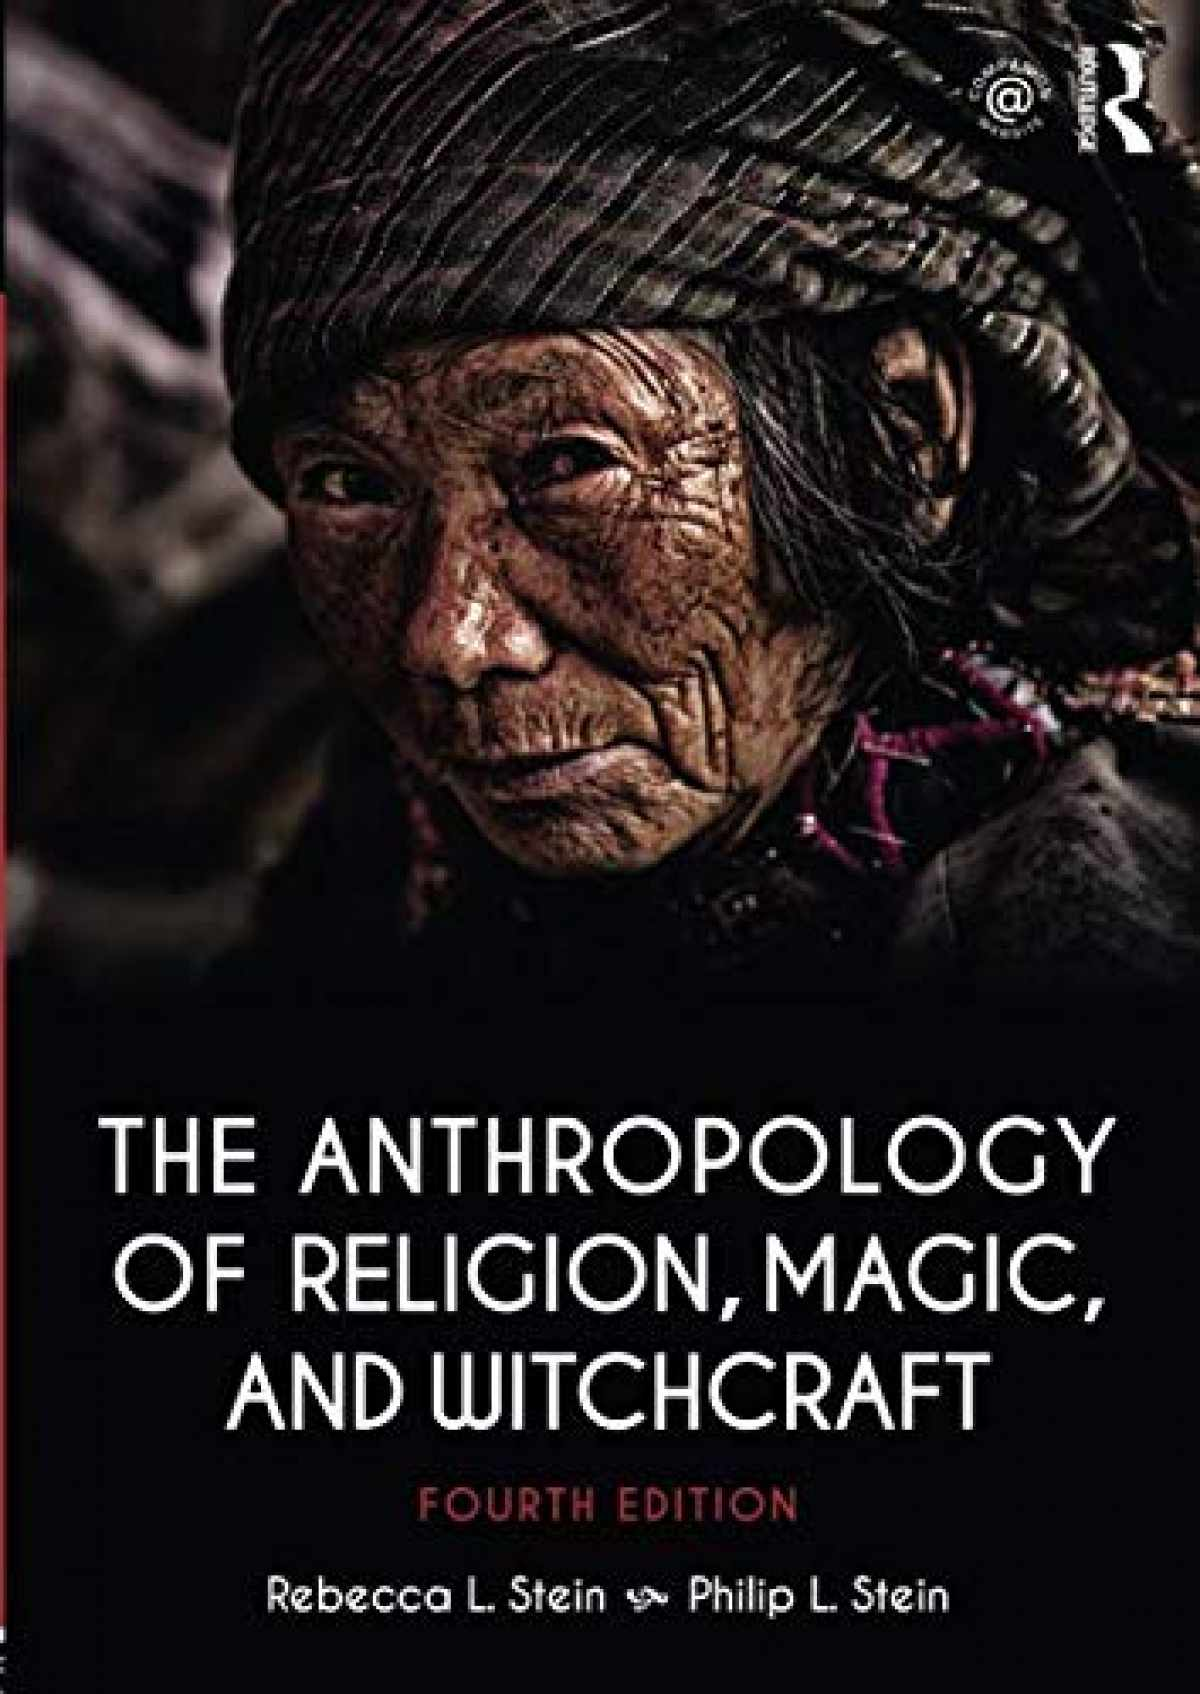 Sell, Buy or Rent The Anthropology of Religion, Magic, and Witchcraf     9781138692527 1138692522 online